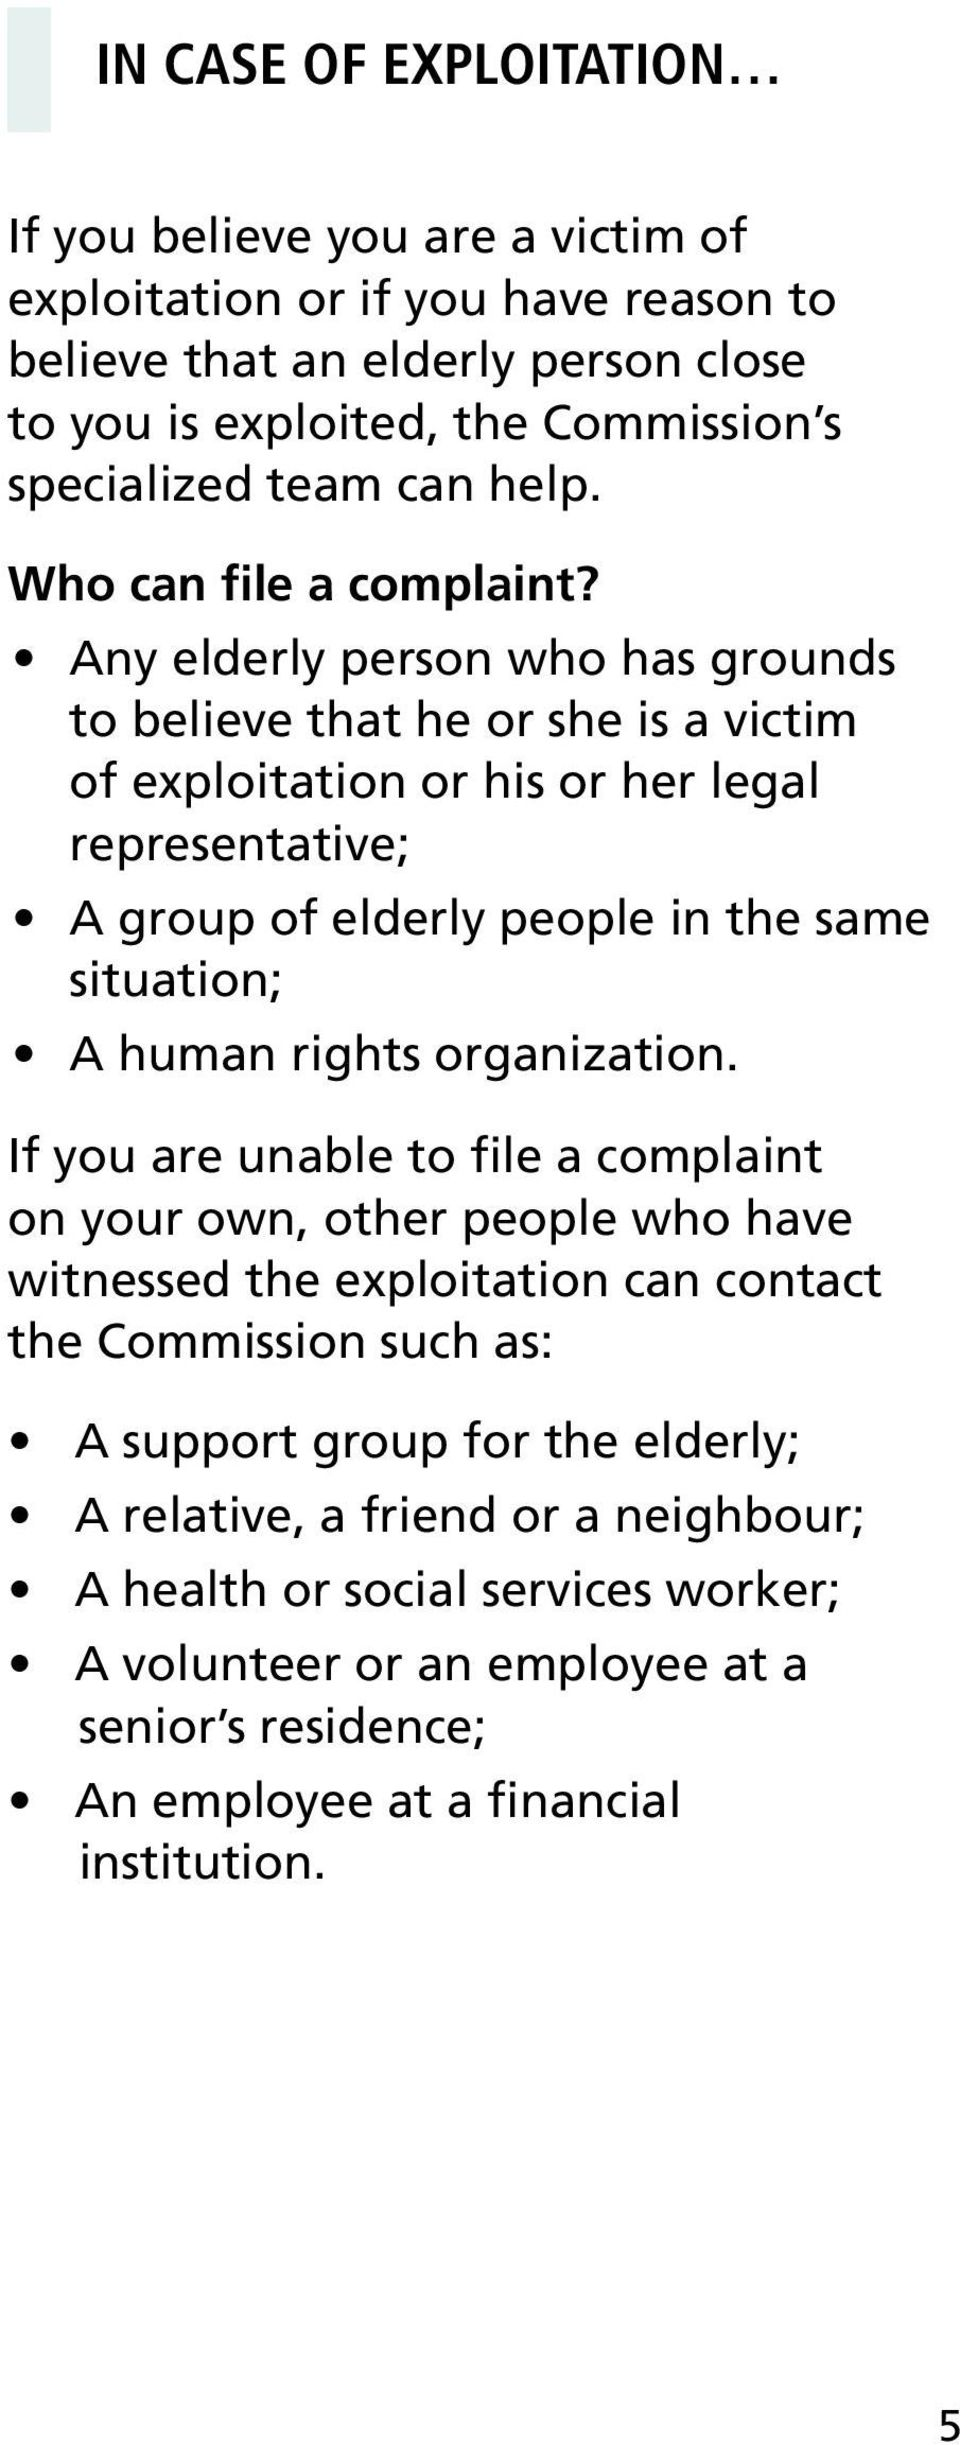 Any elderly person who has grounds to believe that he or she is a victim of exploitation or his or her legal representative; A group of elderly people in the same situation; A human rights